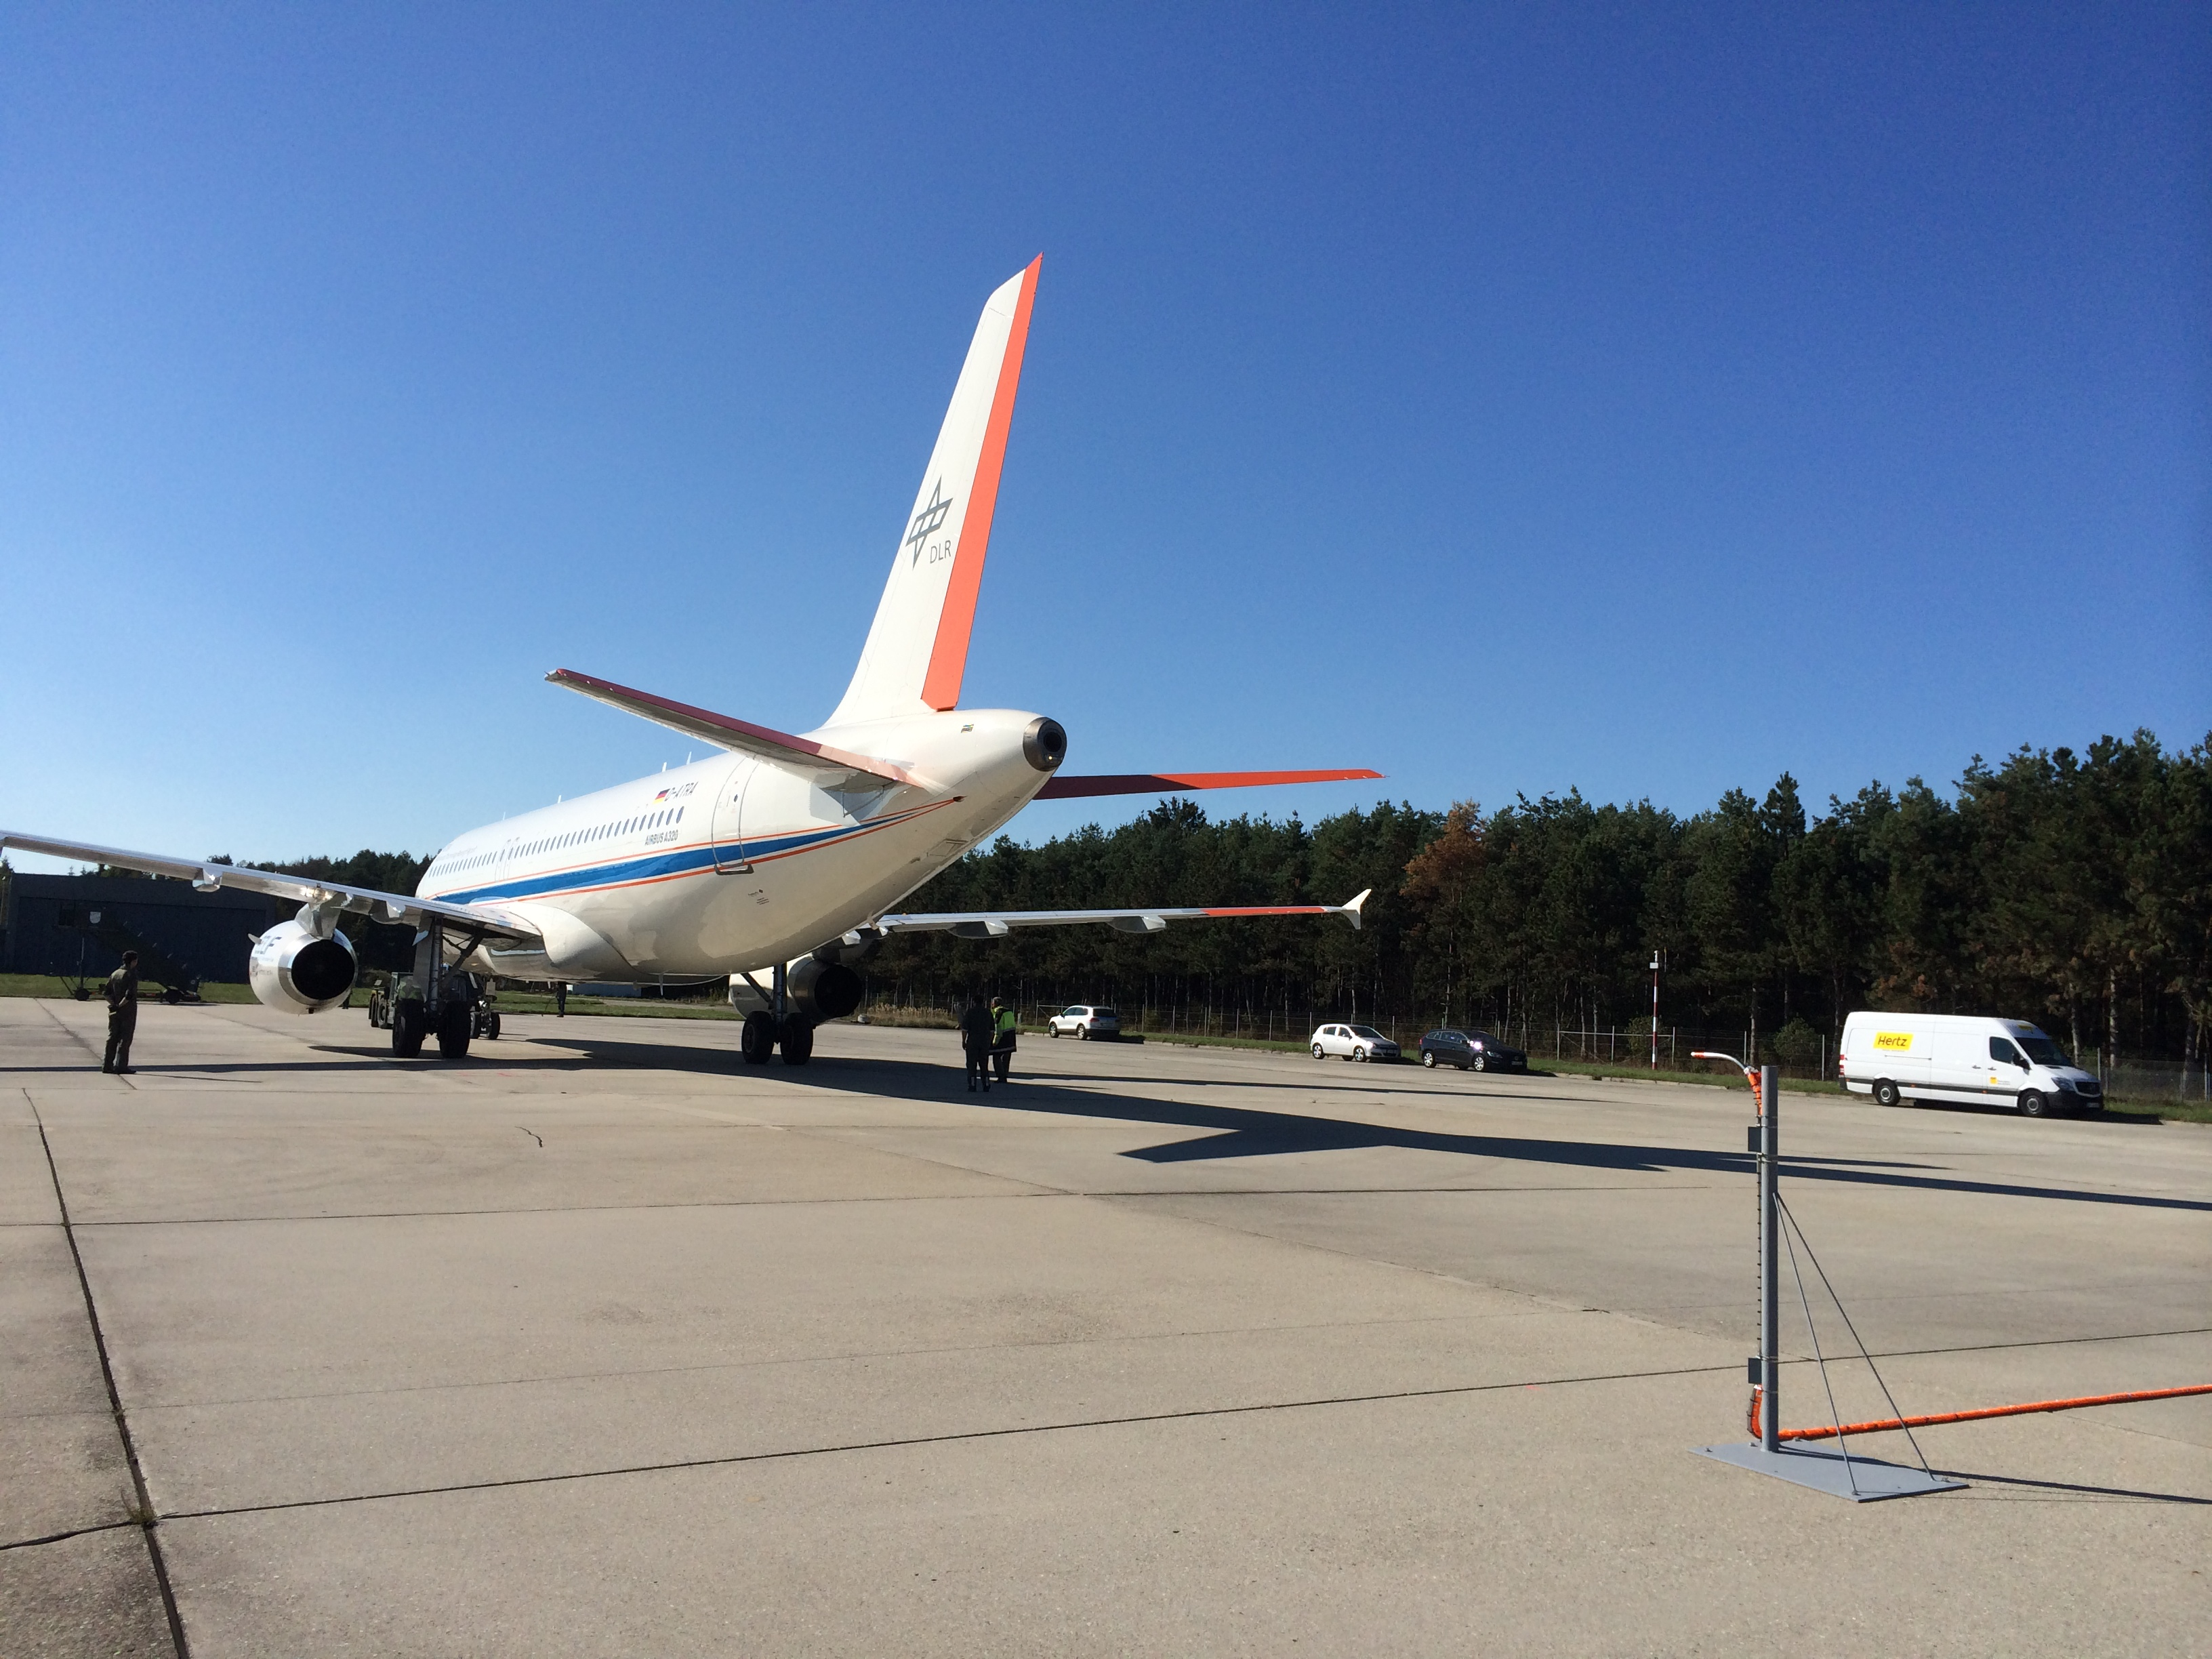 nasa instruments head to germany for alternative fuels research